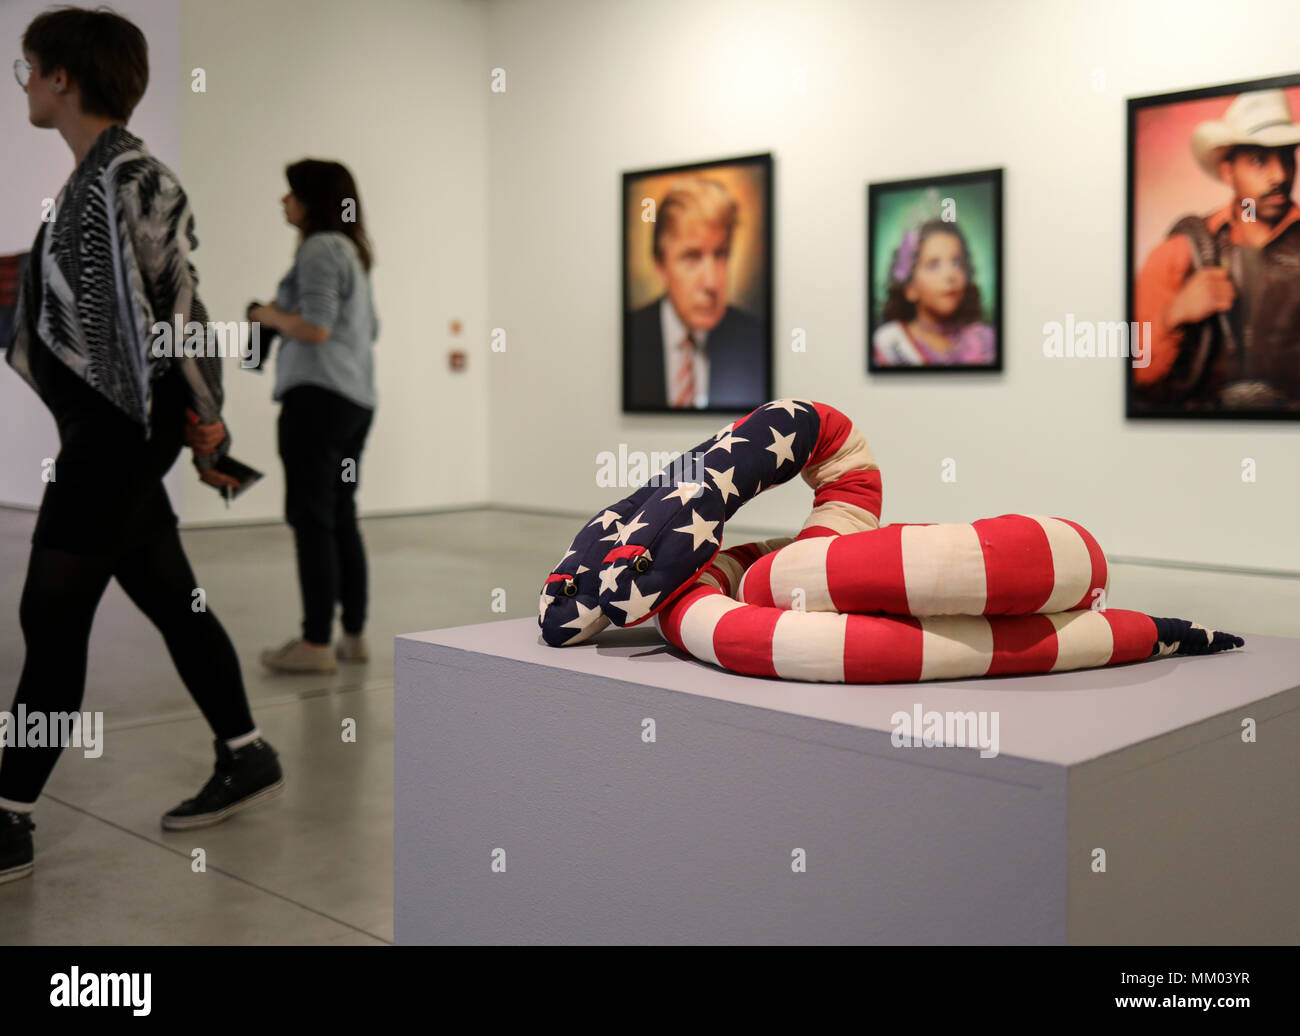 Cracow, Poland - May 8, 2018: Exibition Motherland in Art at Mocak in Krakow. Melissa Vanderberg - Polycephalic Patriot. Two-headed plush snake, made from pieces of flags is a criticism of a two party politicial system Credit: Wieslaw Jarek/Alamy Live News - Stock Image